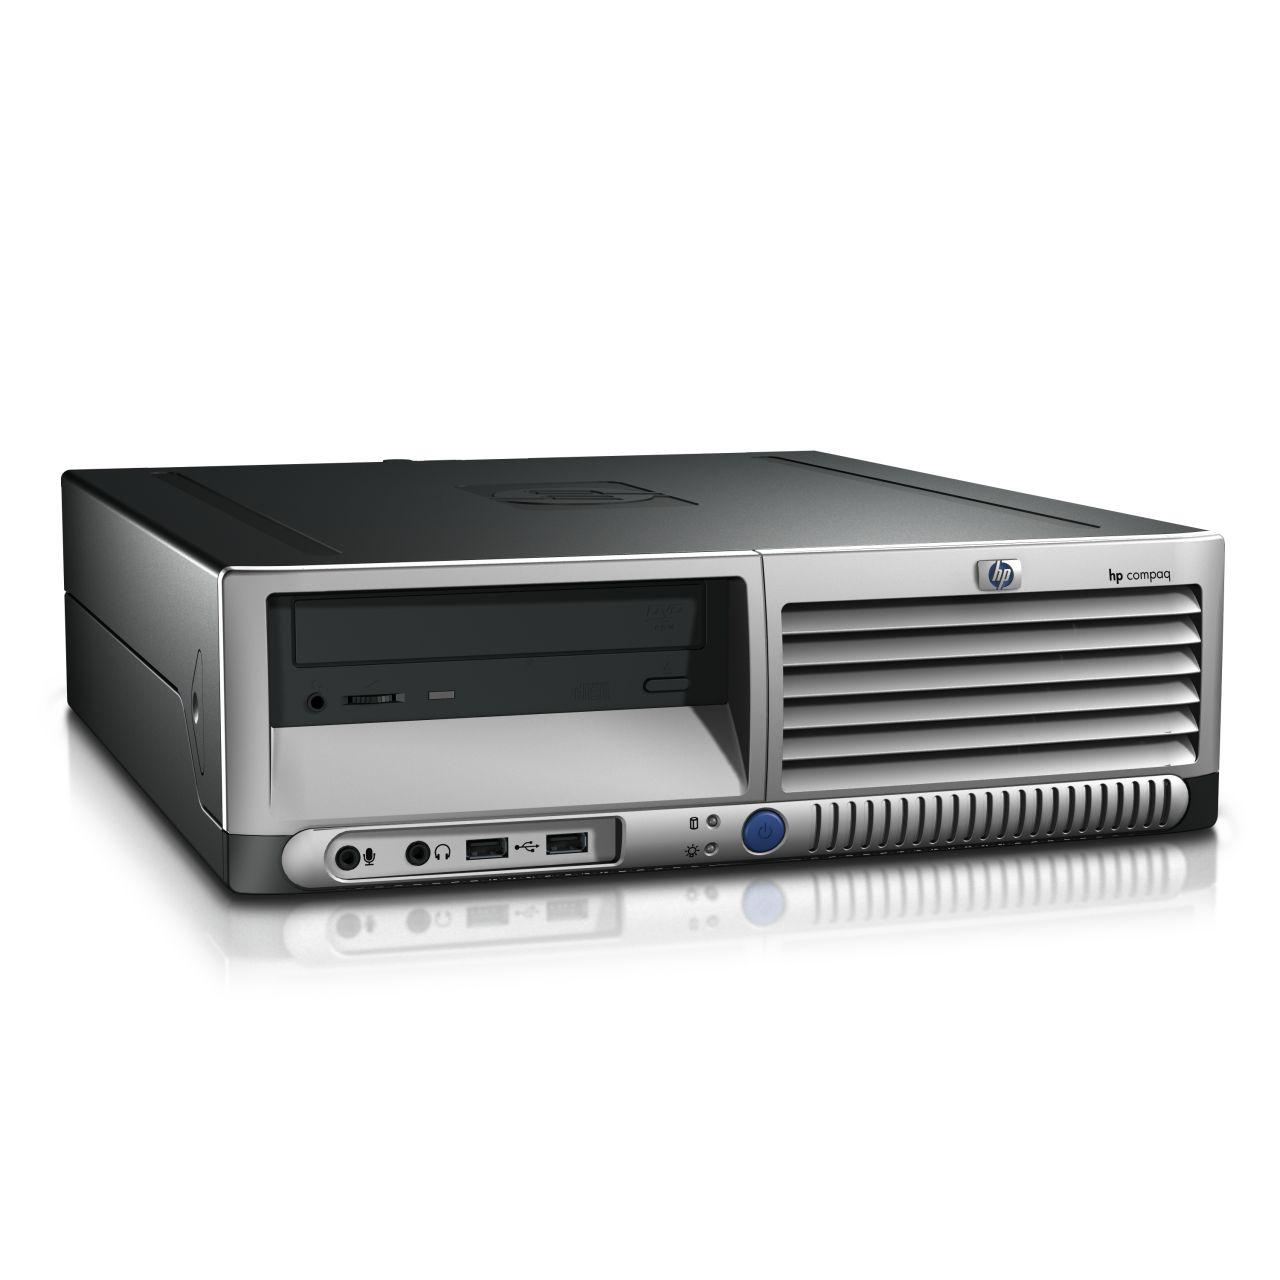 HP Compaq DC7700 1.86 GHz 80GB Desktop Computer (Refurbished)